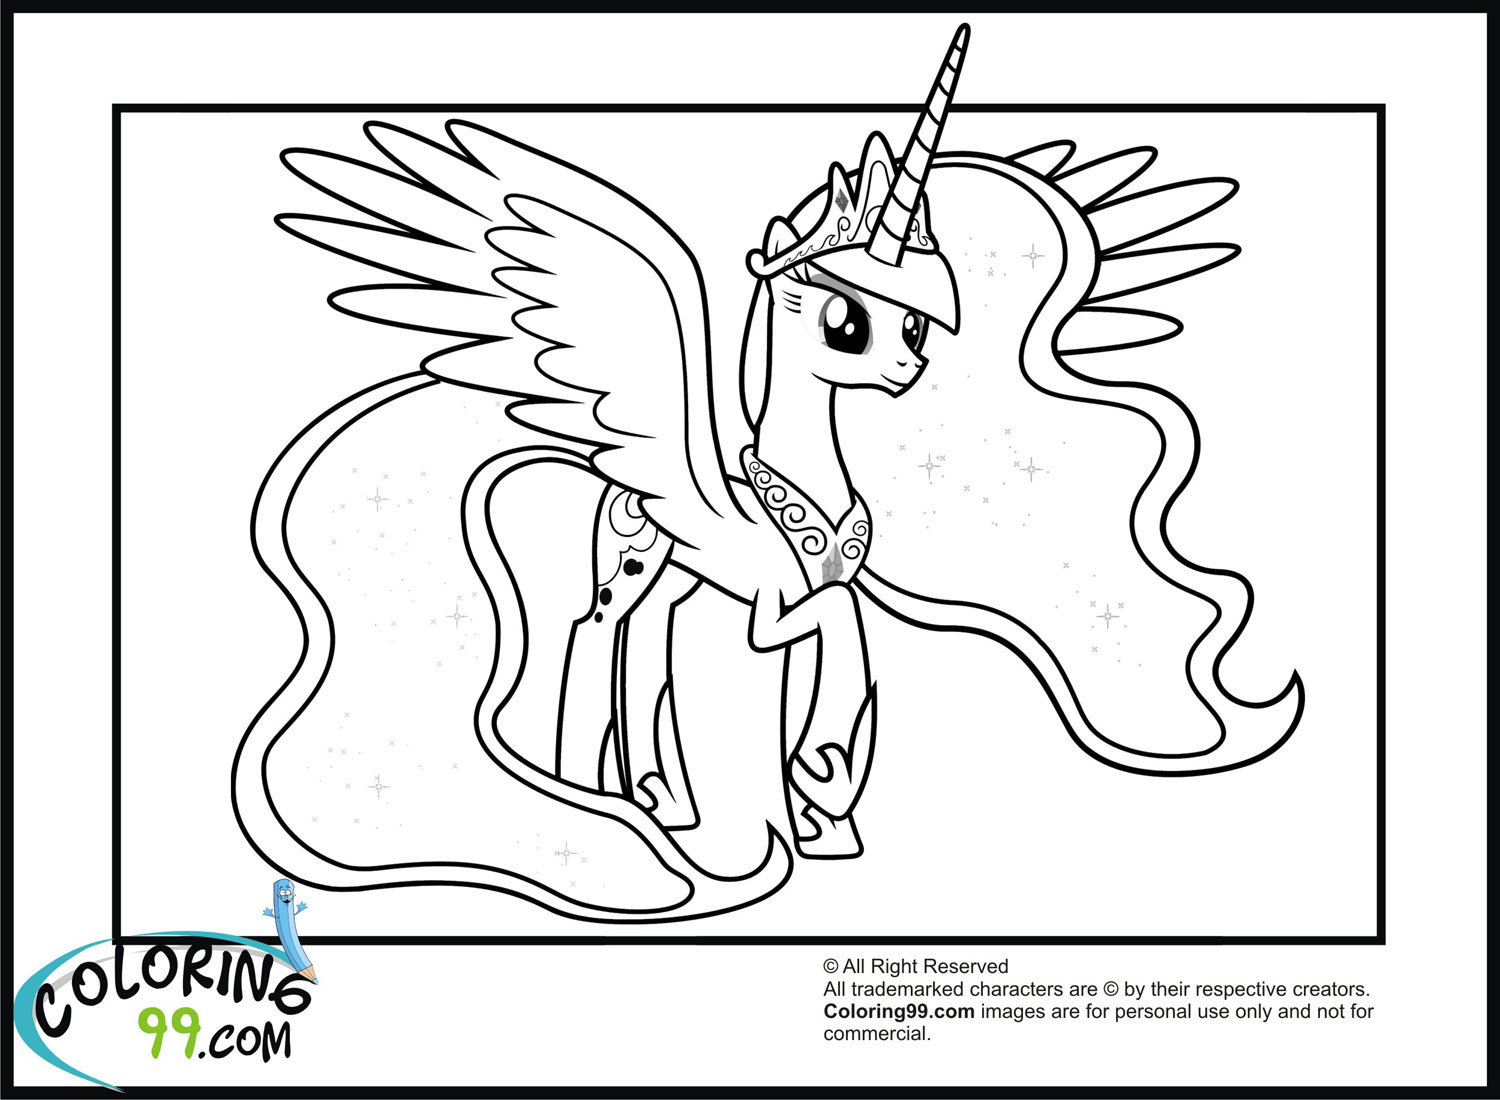 Coloring Pages Of Princess Luna : My little pony princess luna coloring pages team colors